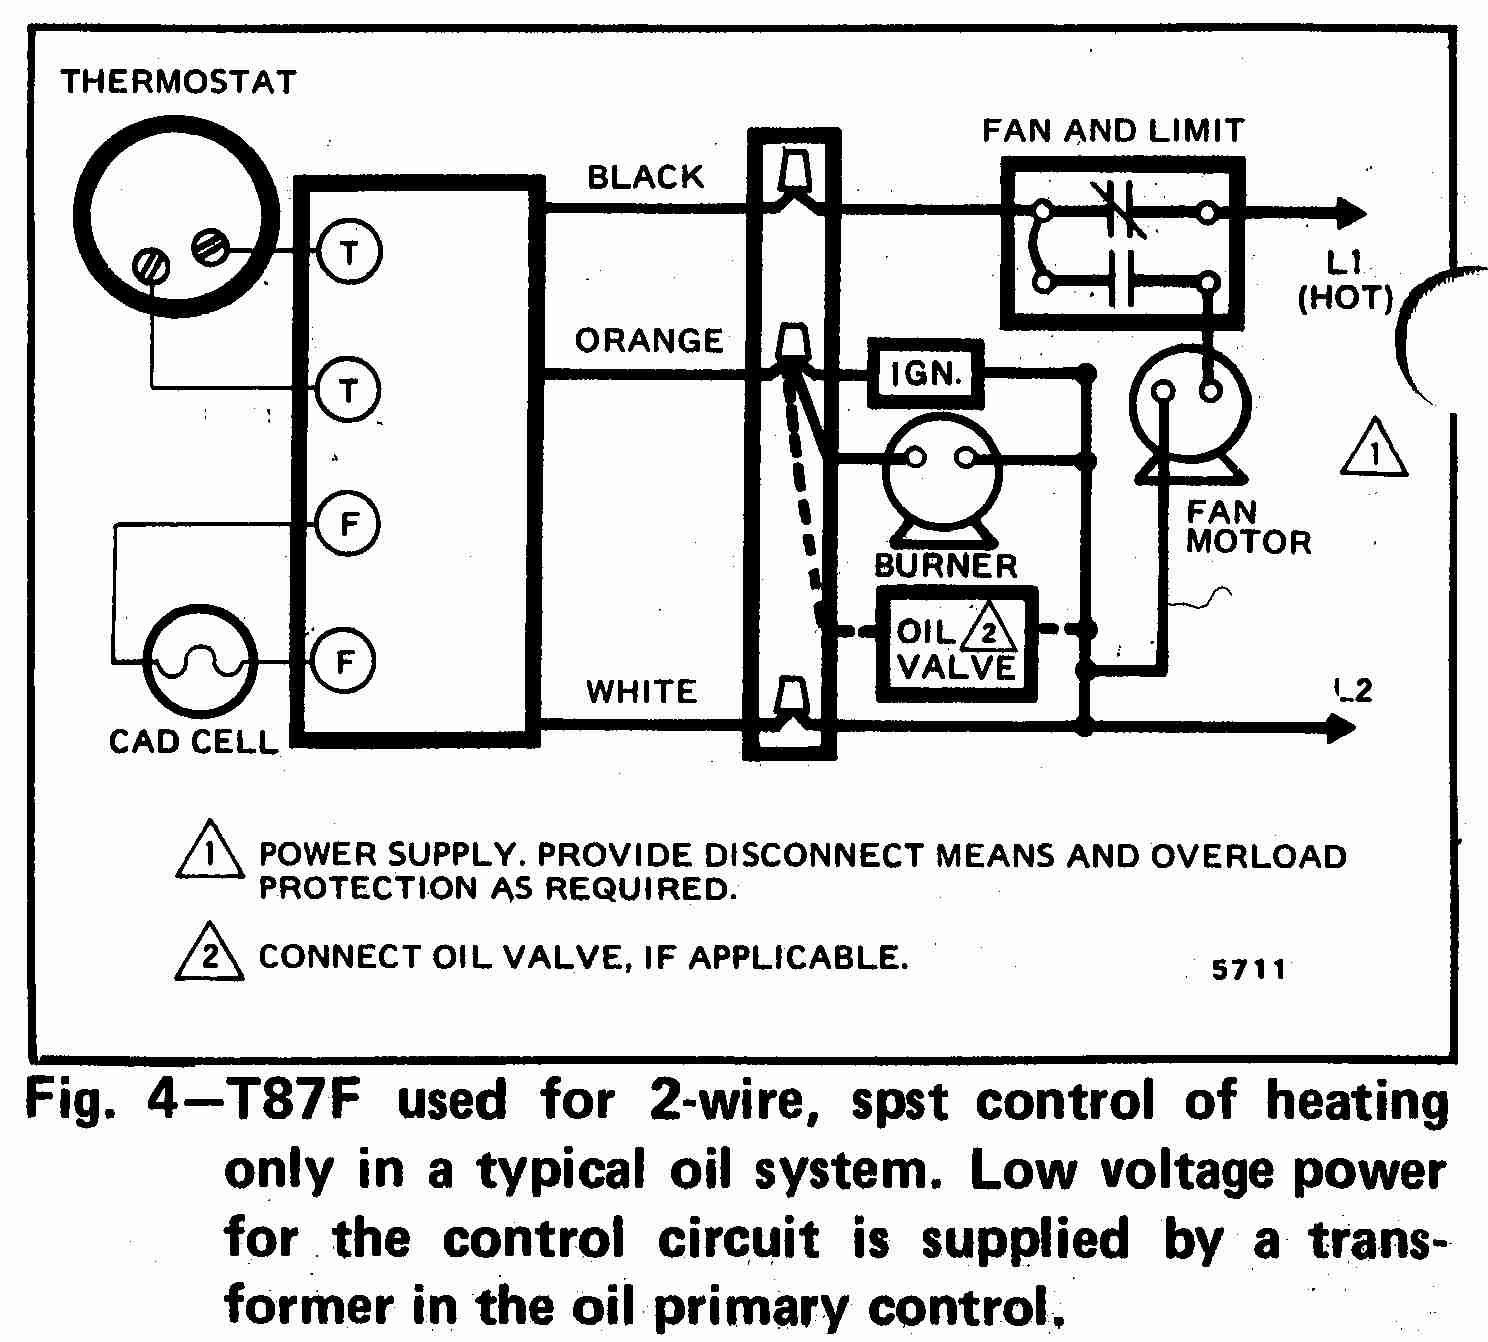 Unique Westinghouse Electric Furnace Wiring Diagram Diagram Diagramsample Diagramtemplate Wiringdiagram Diagramchart W Thermostat Wiring Hvac System Wire